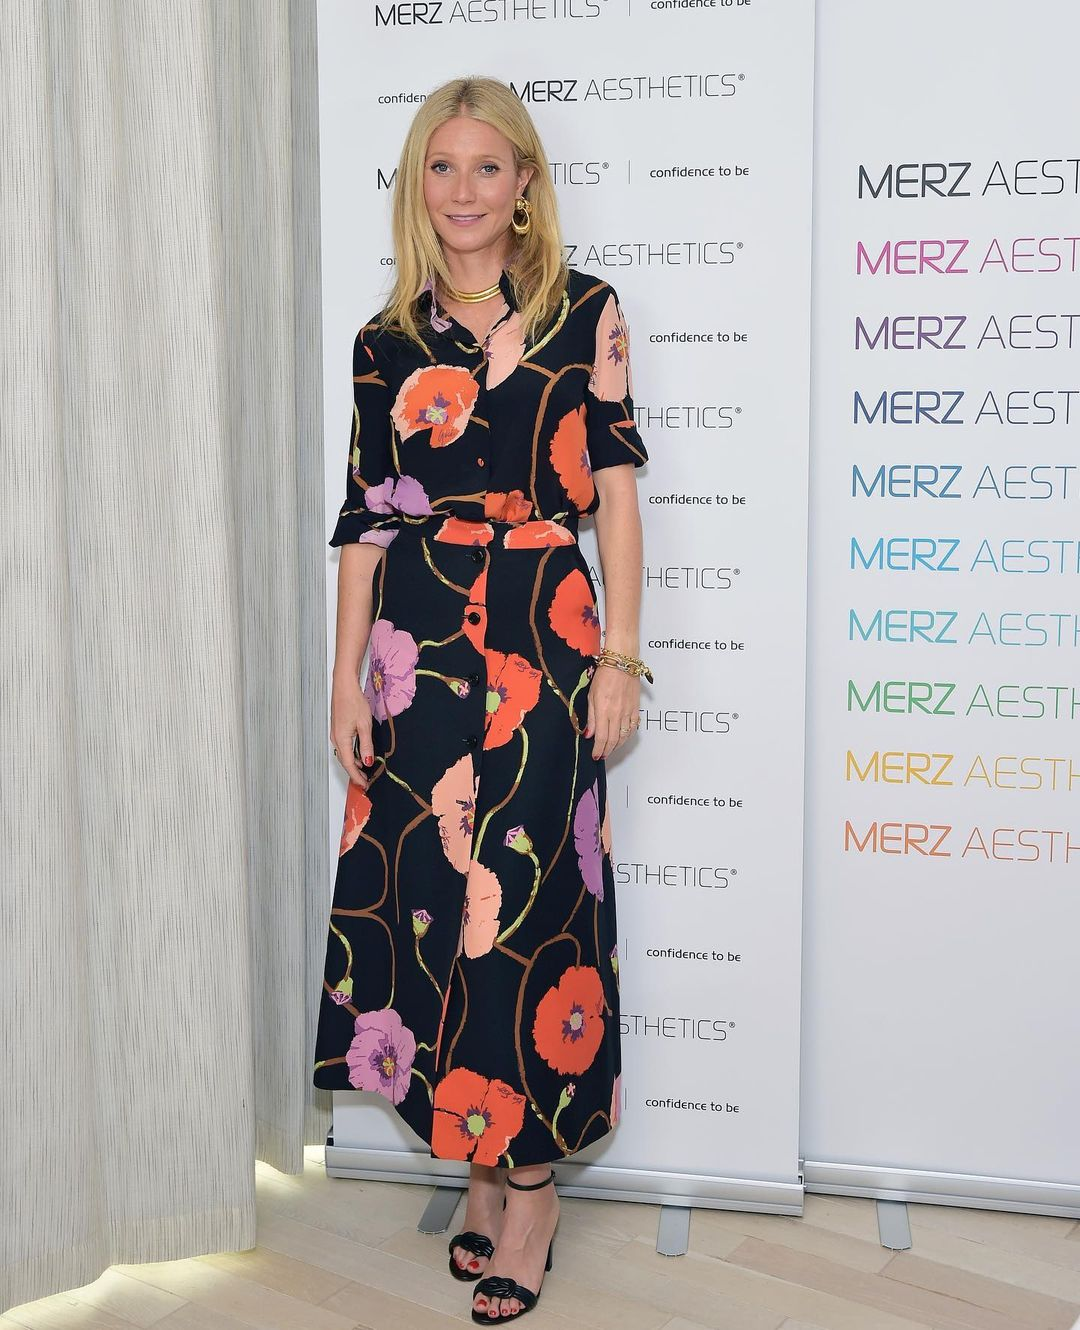 Gwyneth Paltrow Wore Gucci Promoting Merz Aesthetics